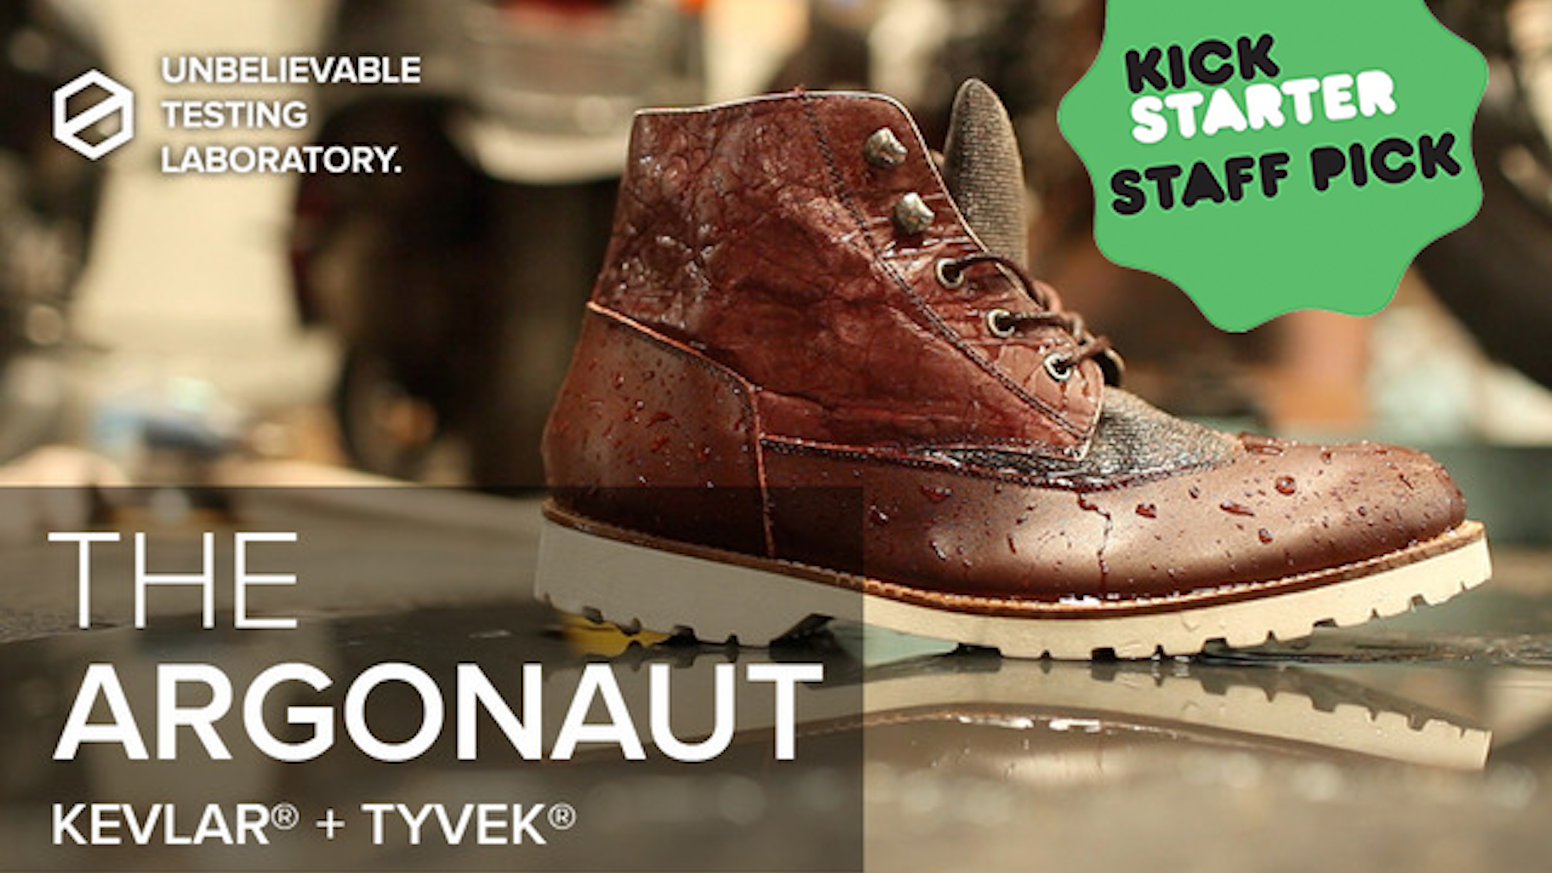 The Argonaut Four Season Kevlar And Tyvek Paper Boot By D Island Shoes Hikers Boots Mens Fashionable Brown Is A Unlike Anything You Have Ever Worn Before Weighing In At